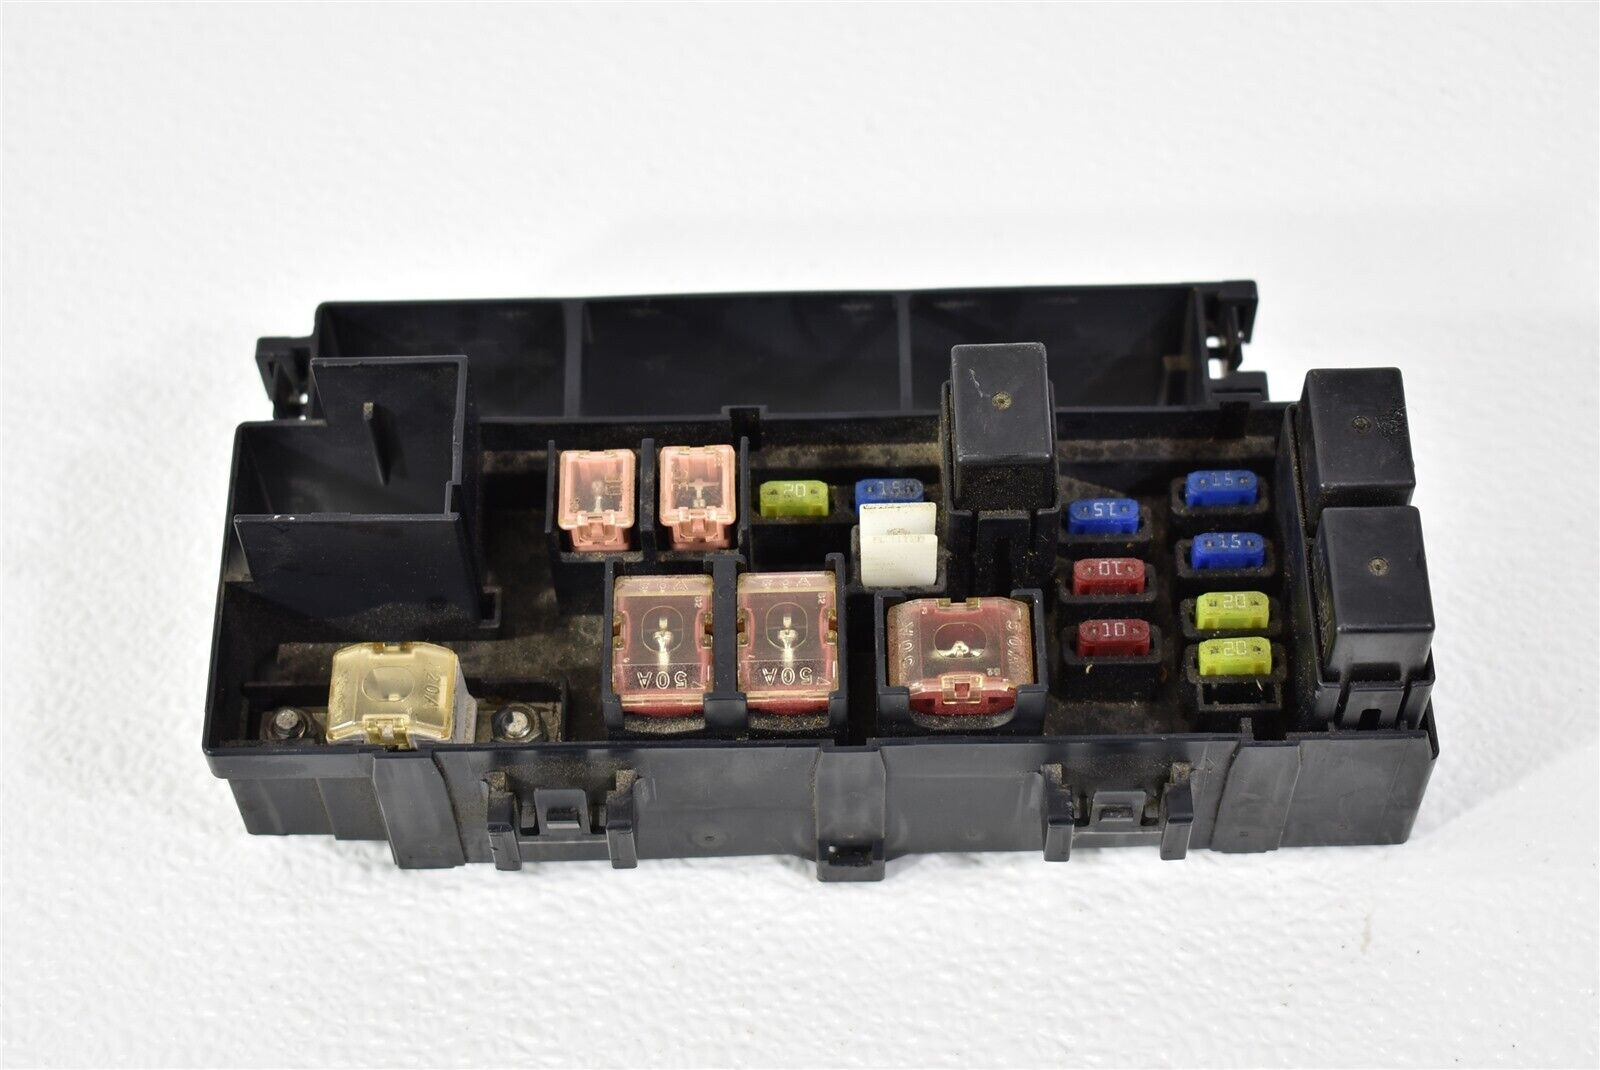 [DIAGRAM_38ZD]  2006 2007 Subaru Impreza WRX STI Engine Bay Fuse Box Relay OEM 06 07 | eBay | 2007 Subaru Wrx Fuse Box |  | eBay